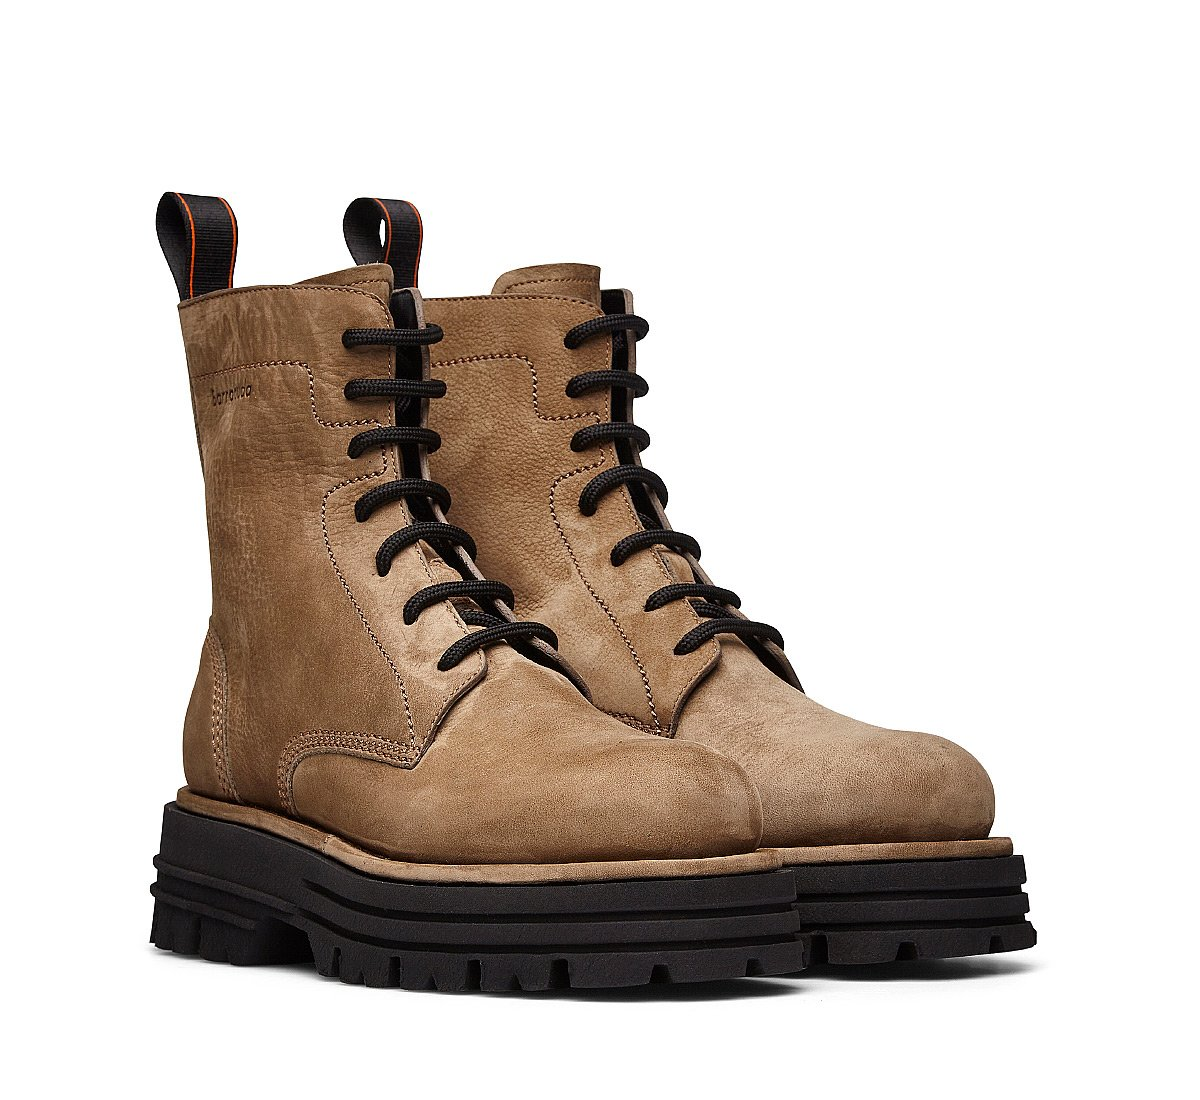 Barracuda Beatle boots in soft Nubuck leather